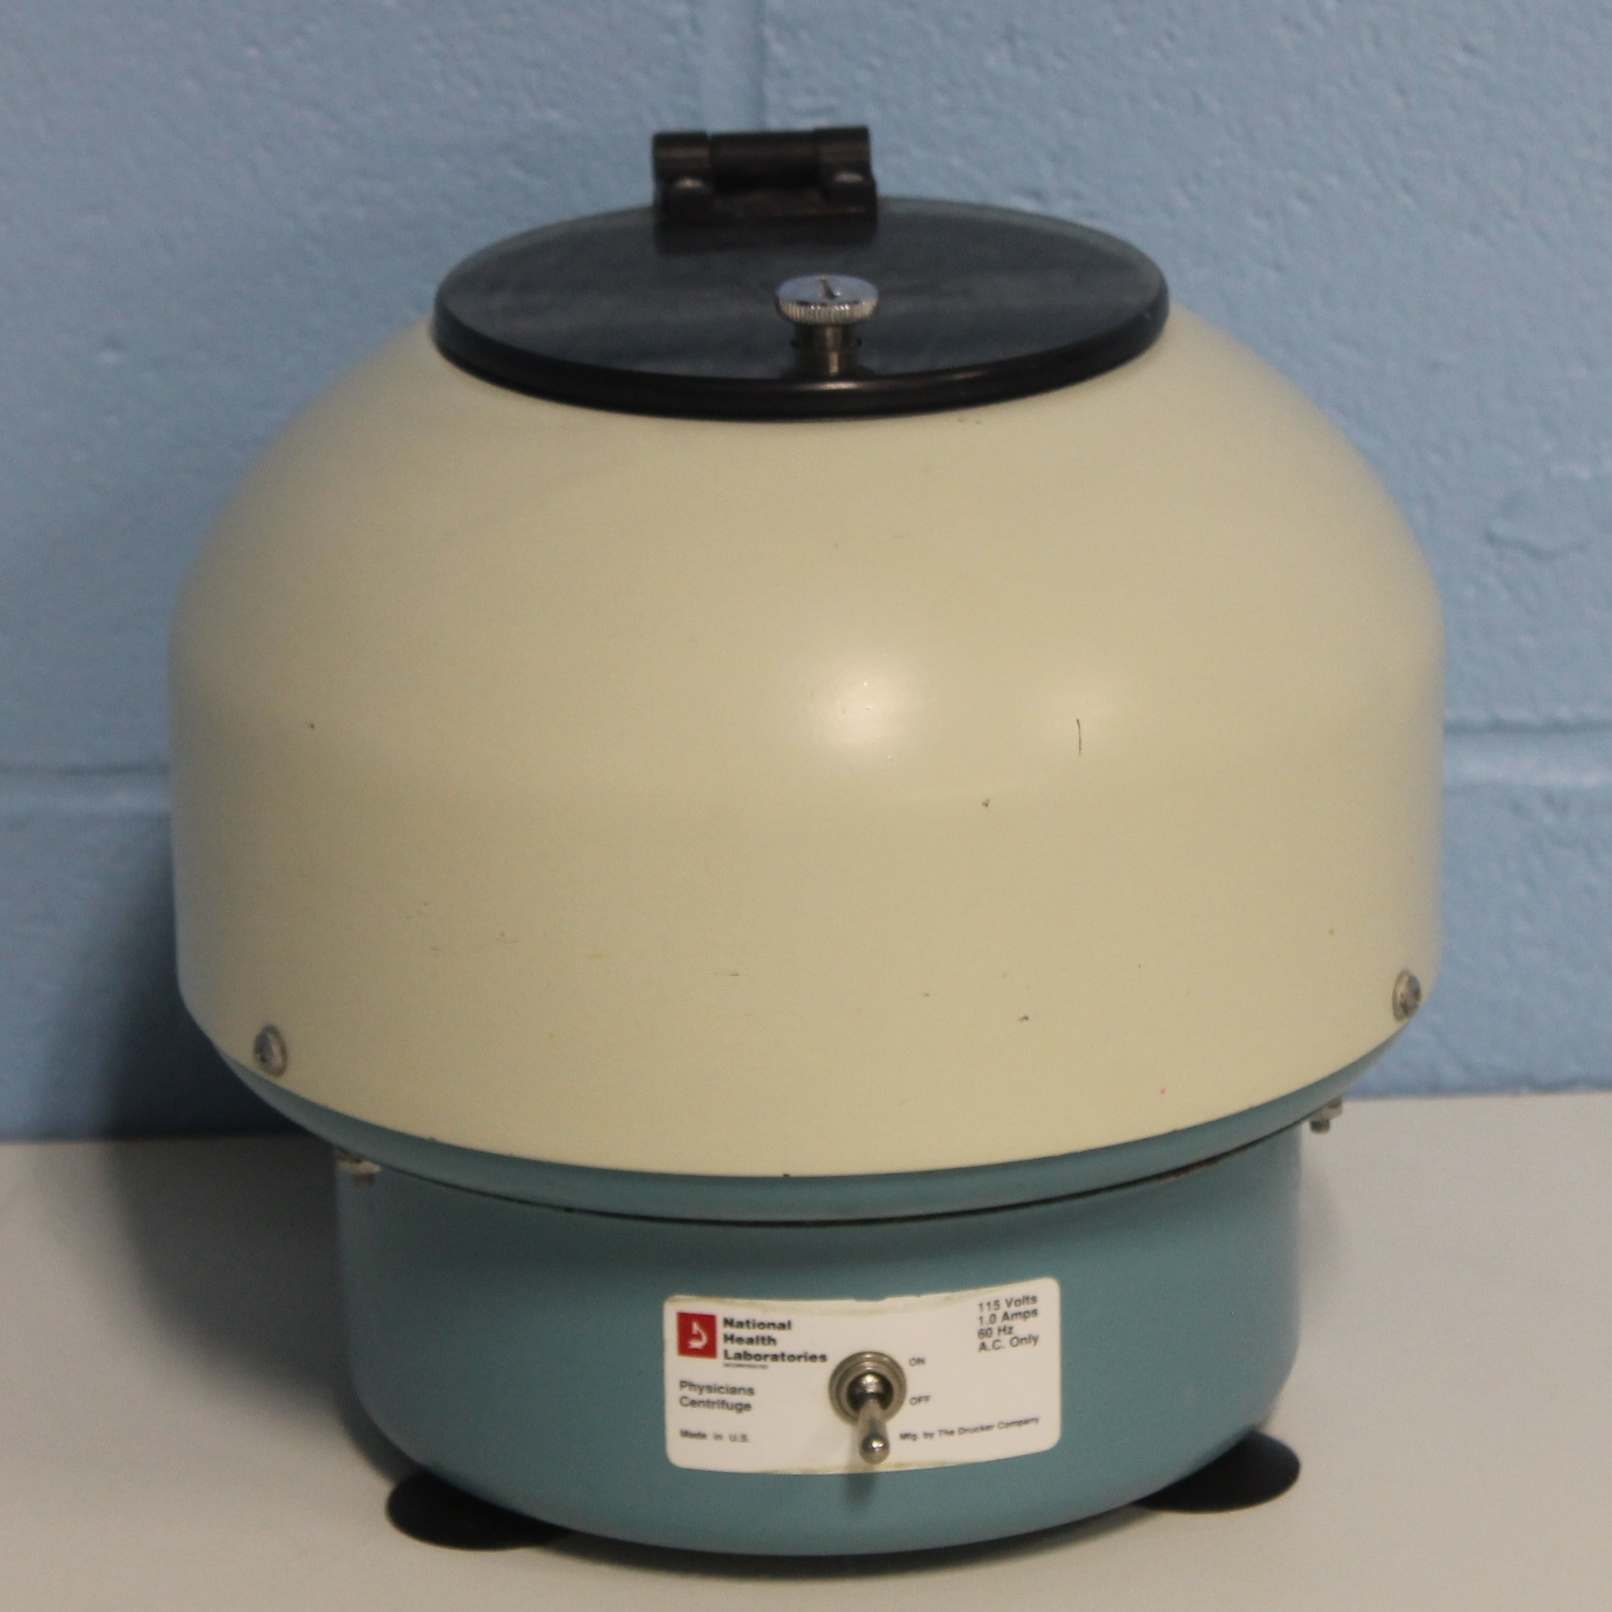 Refurbished Drucker 611 B Physicians Centrifuge Benchtop